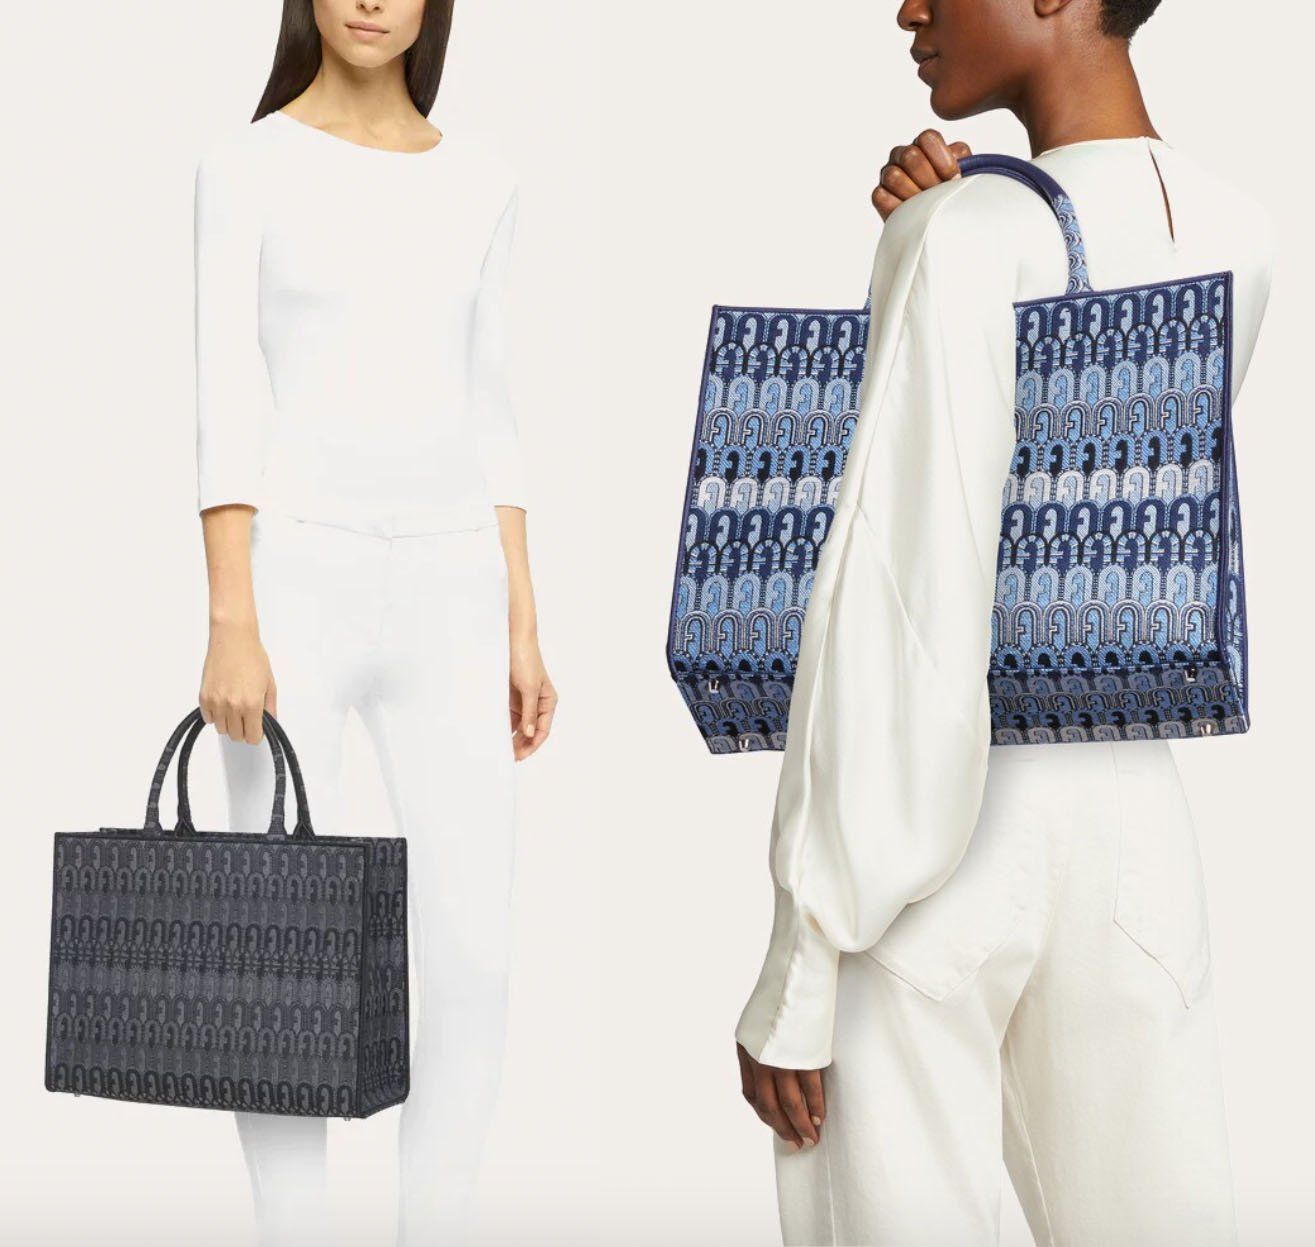 Furla's Opportunity tote is a chic large shopping bag made from jacquard fabric with an ethnic design